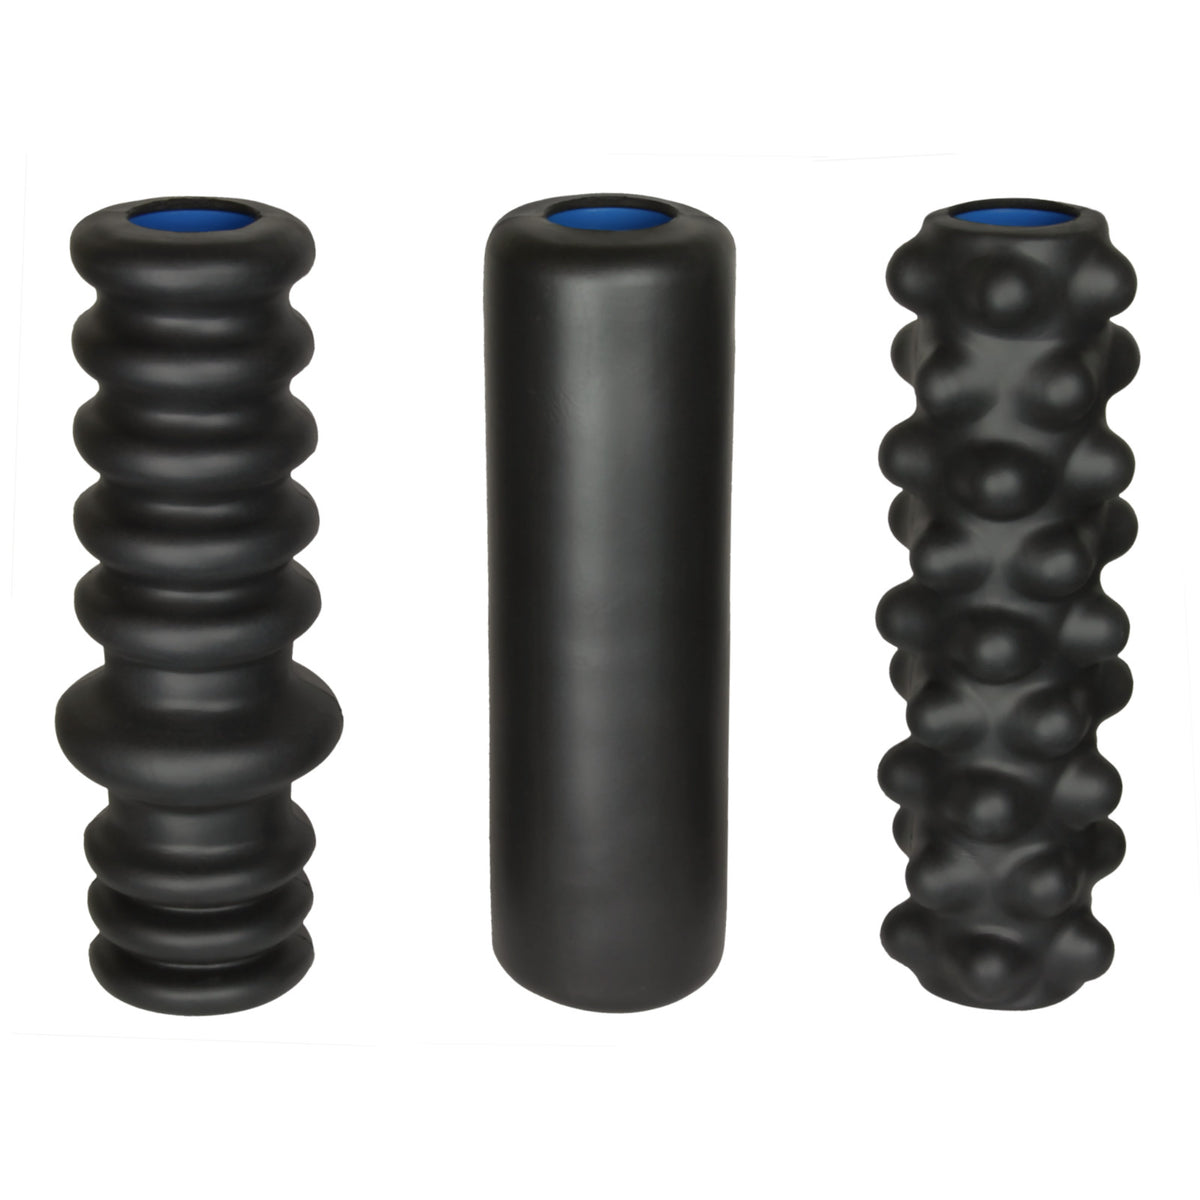 DoubleUP 3-pack of rollers LoosenUP, WarmUP, and BreakUP foam rollers